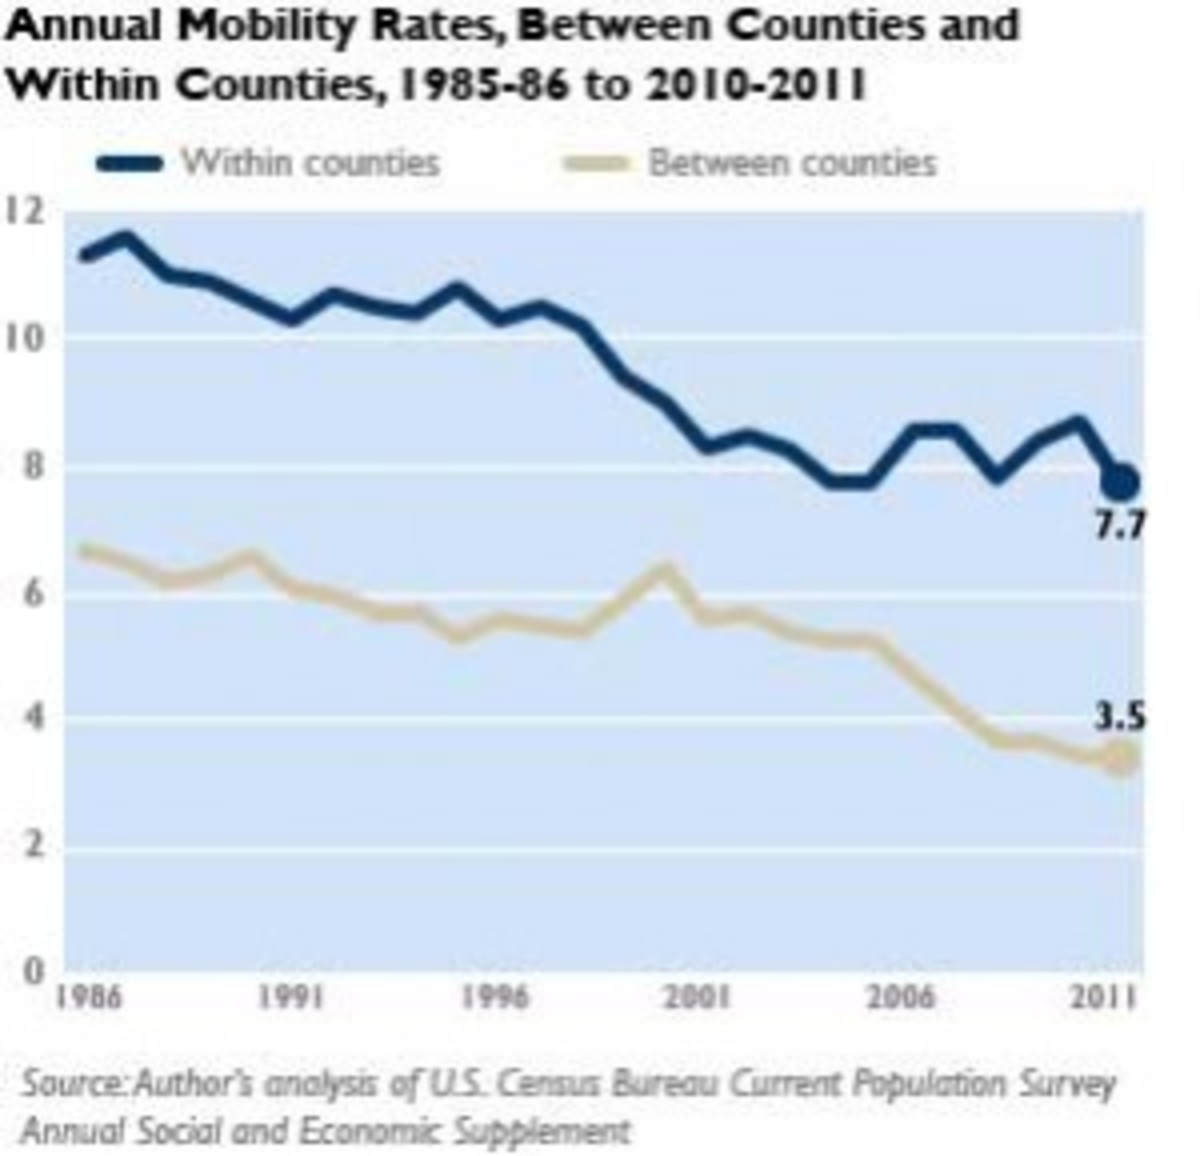 On the Brookings website, William Frey offers this chart showing the decline in mobility in the U.S. Click the photo to visit the website.